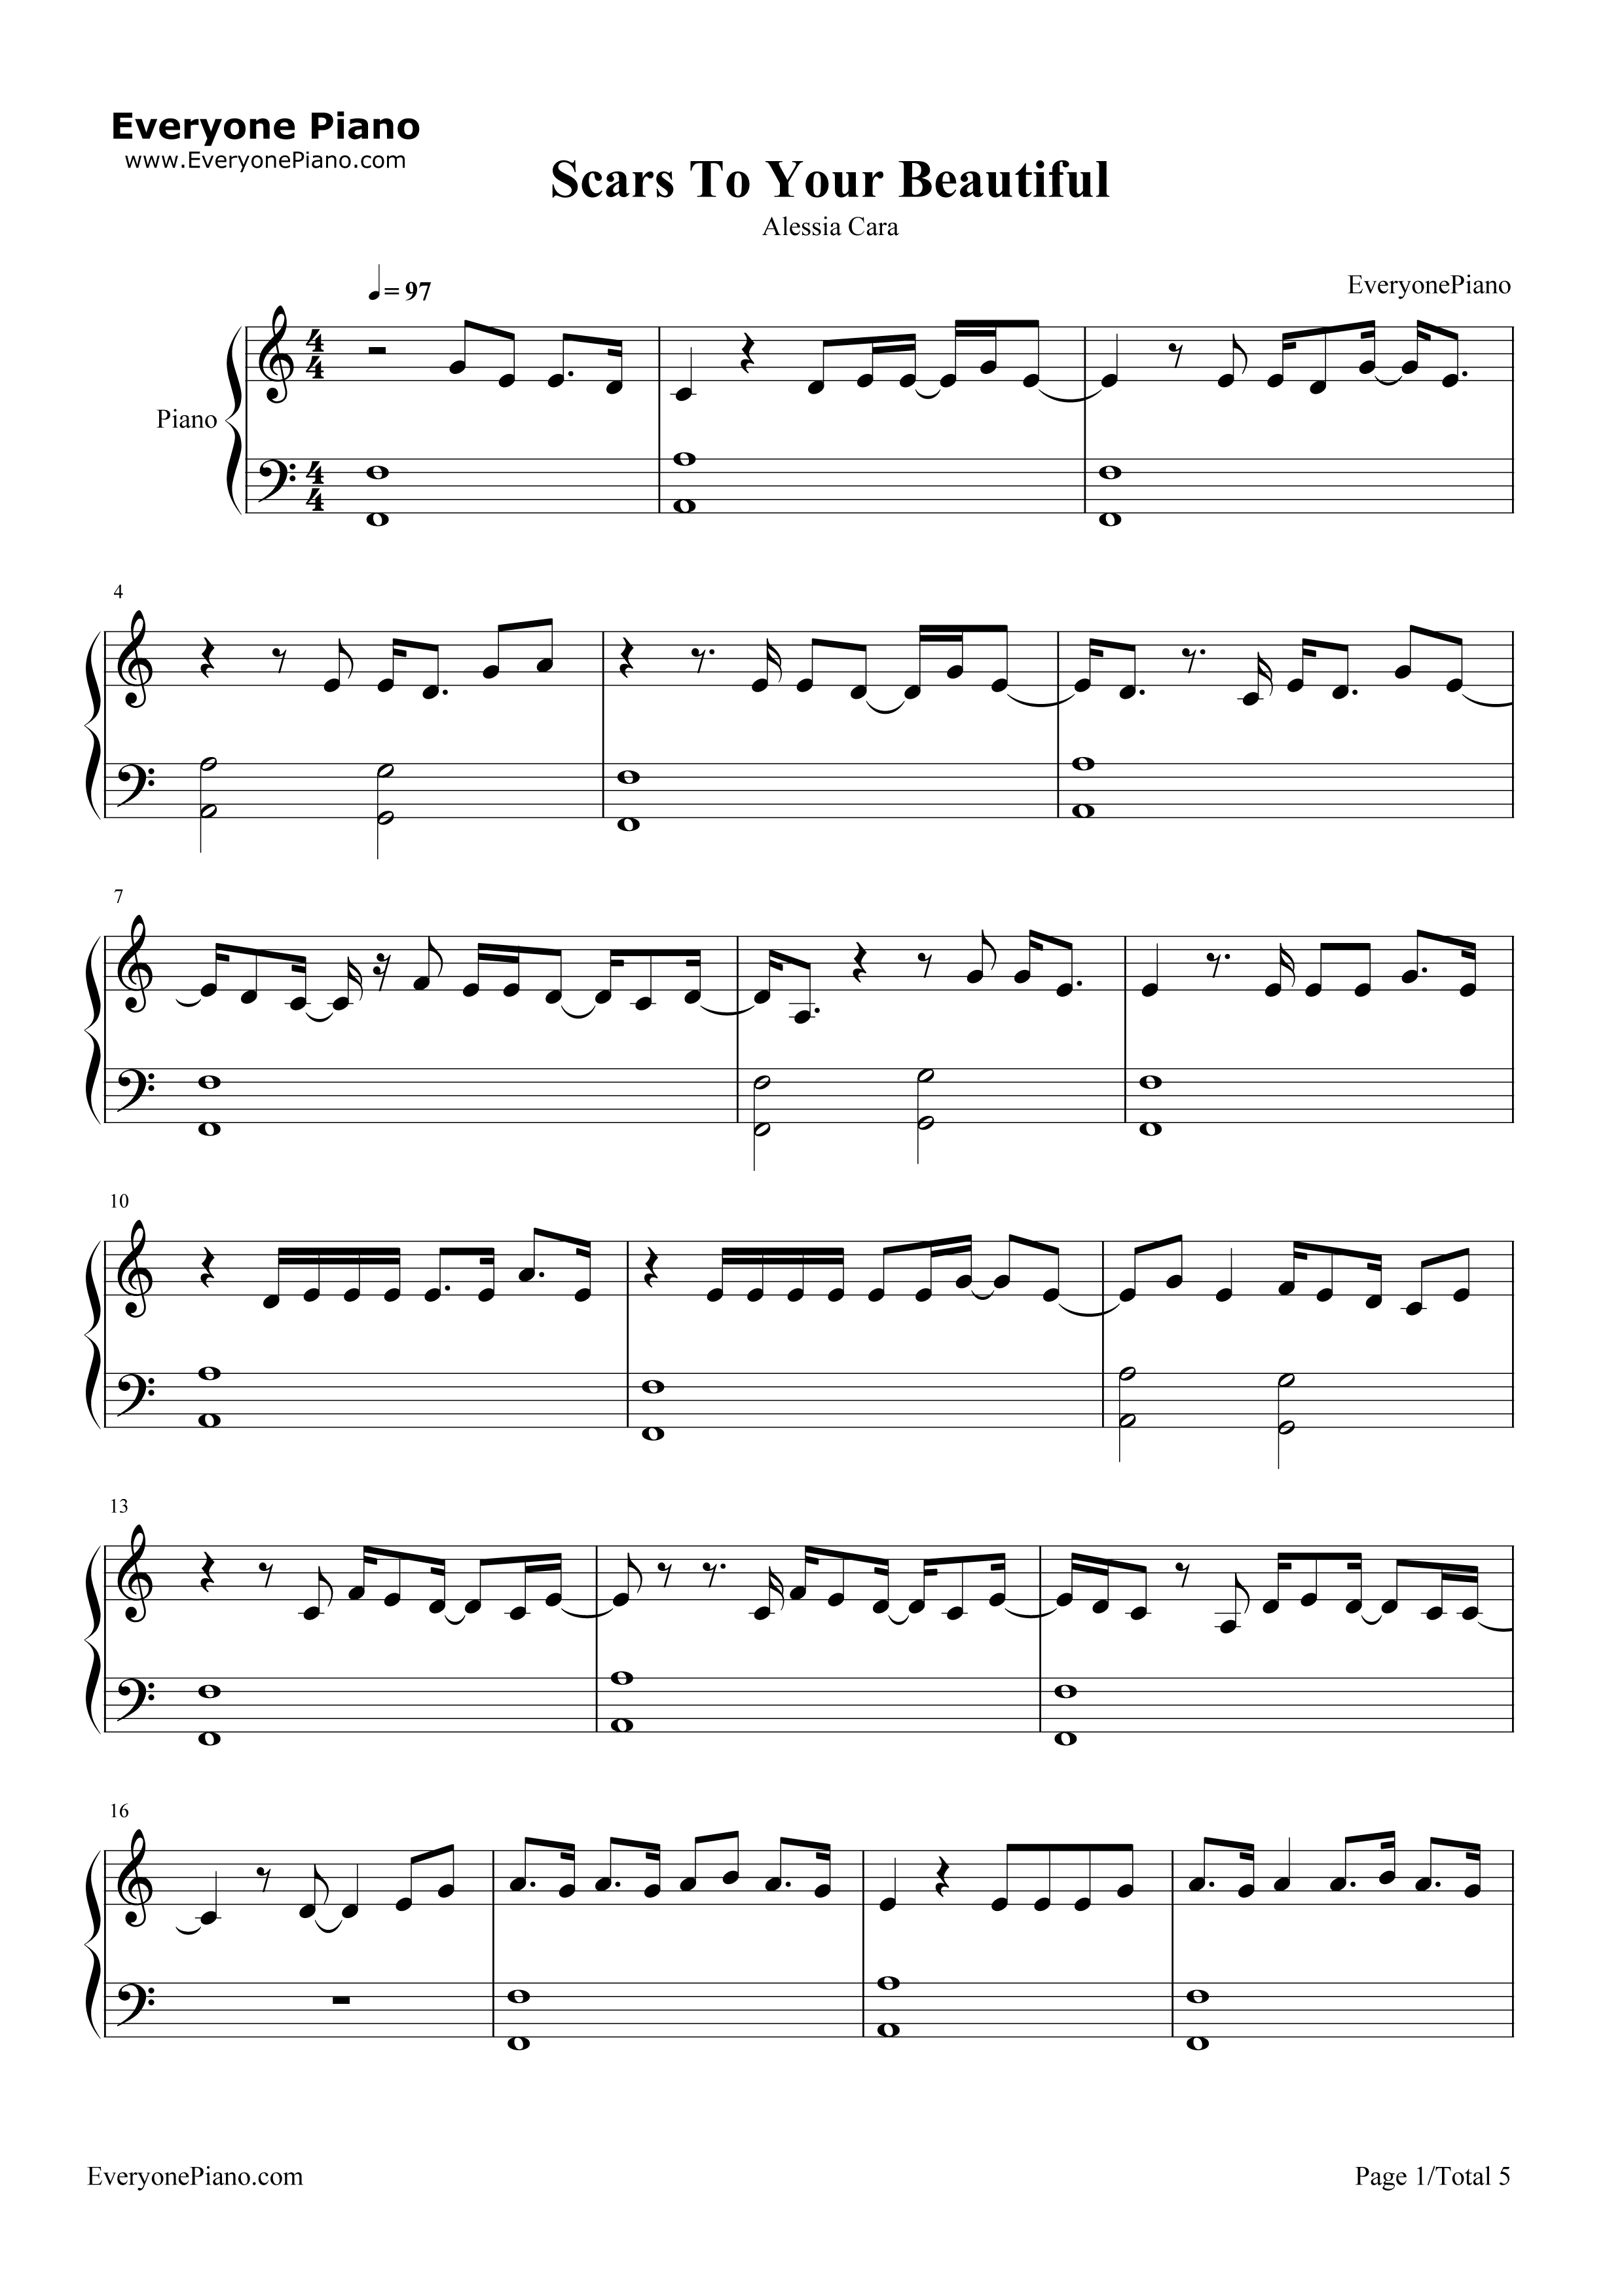 Scars To Your Beautiful-Alessia Cara Stave Preview 1-Free Piano Sheet Music u0026 Piano Chords